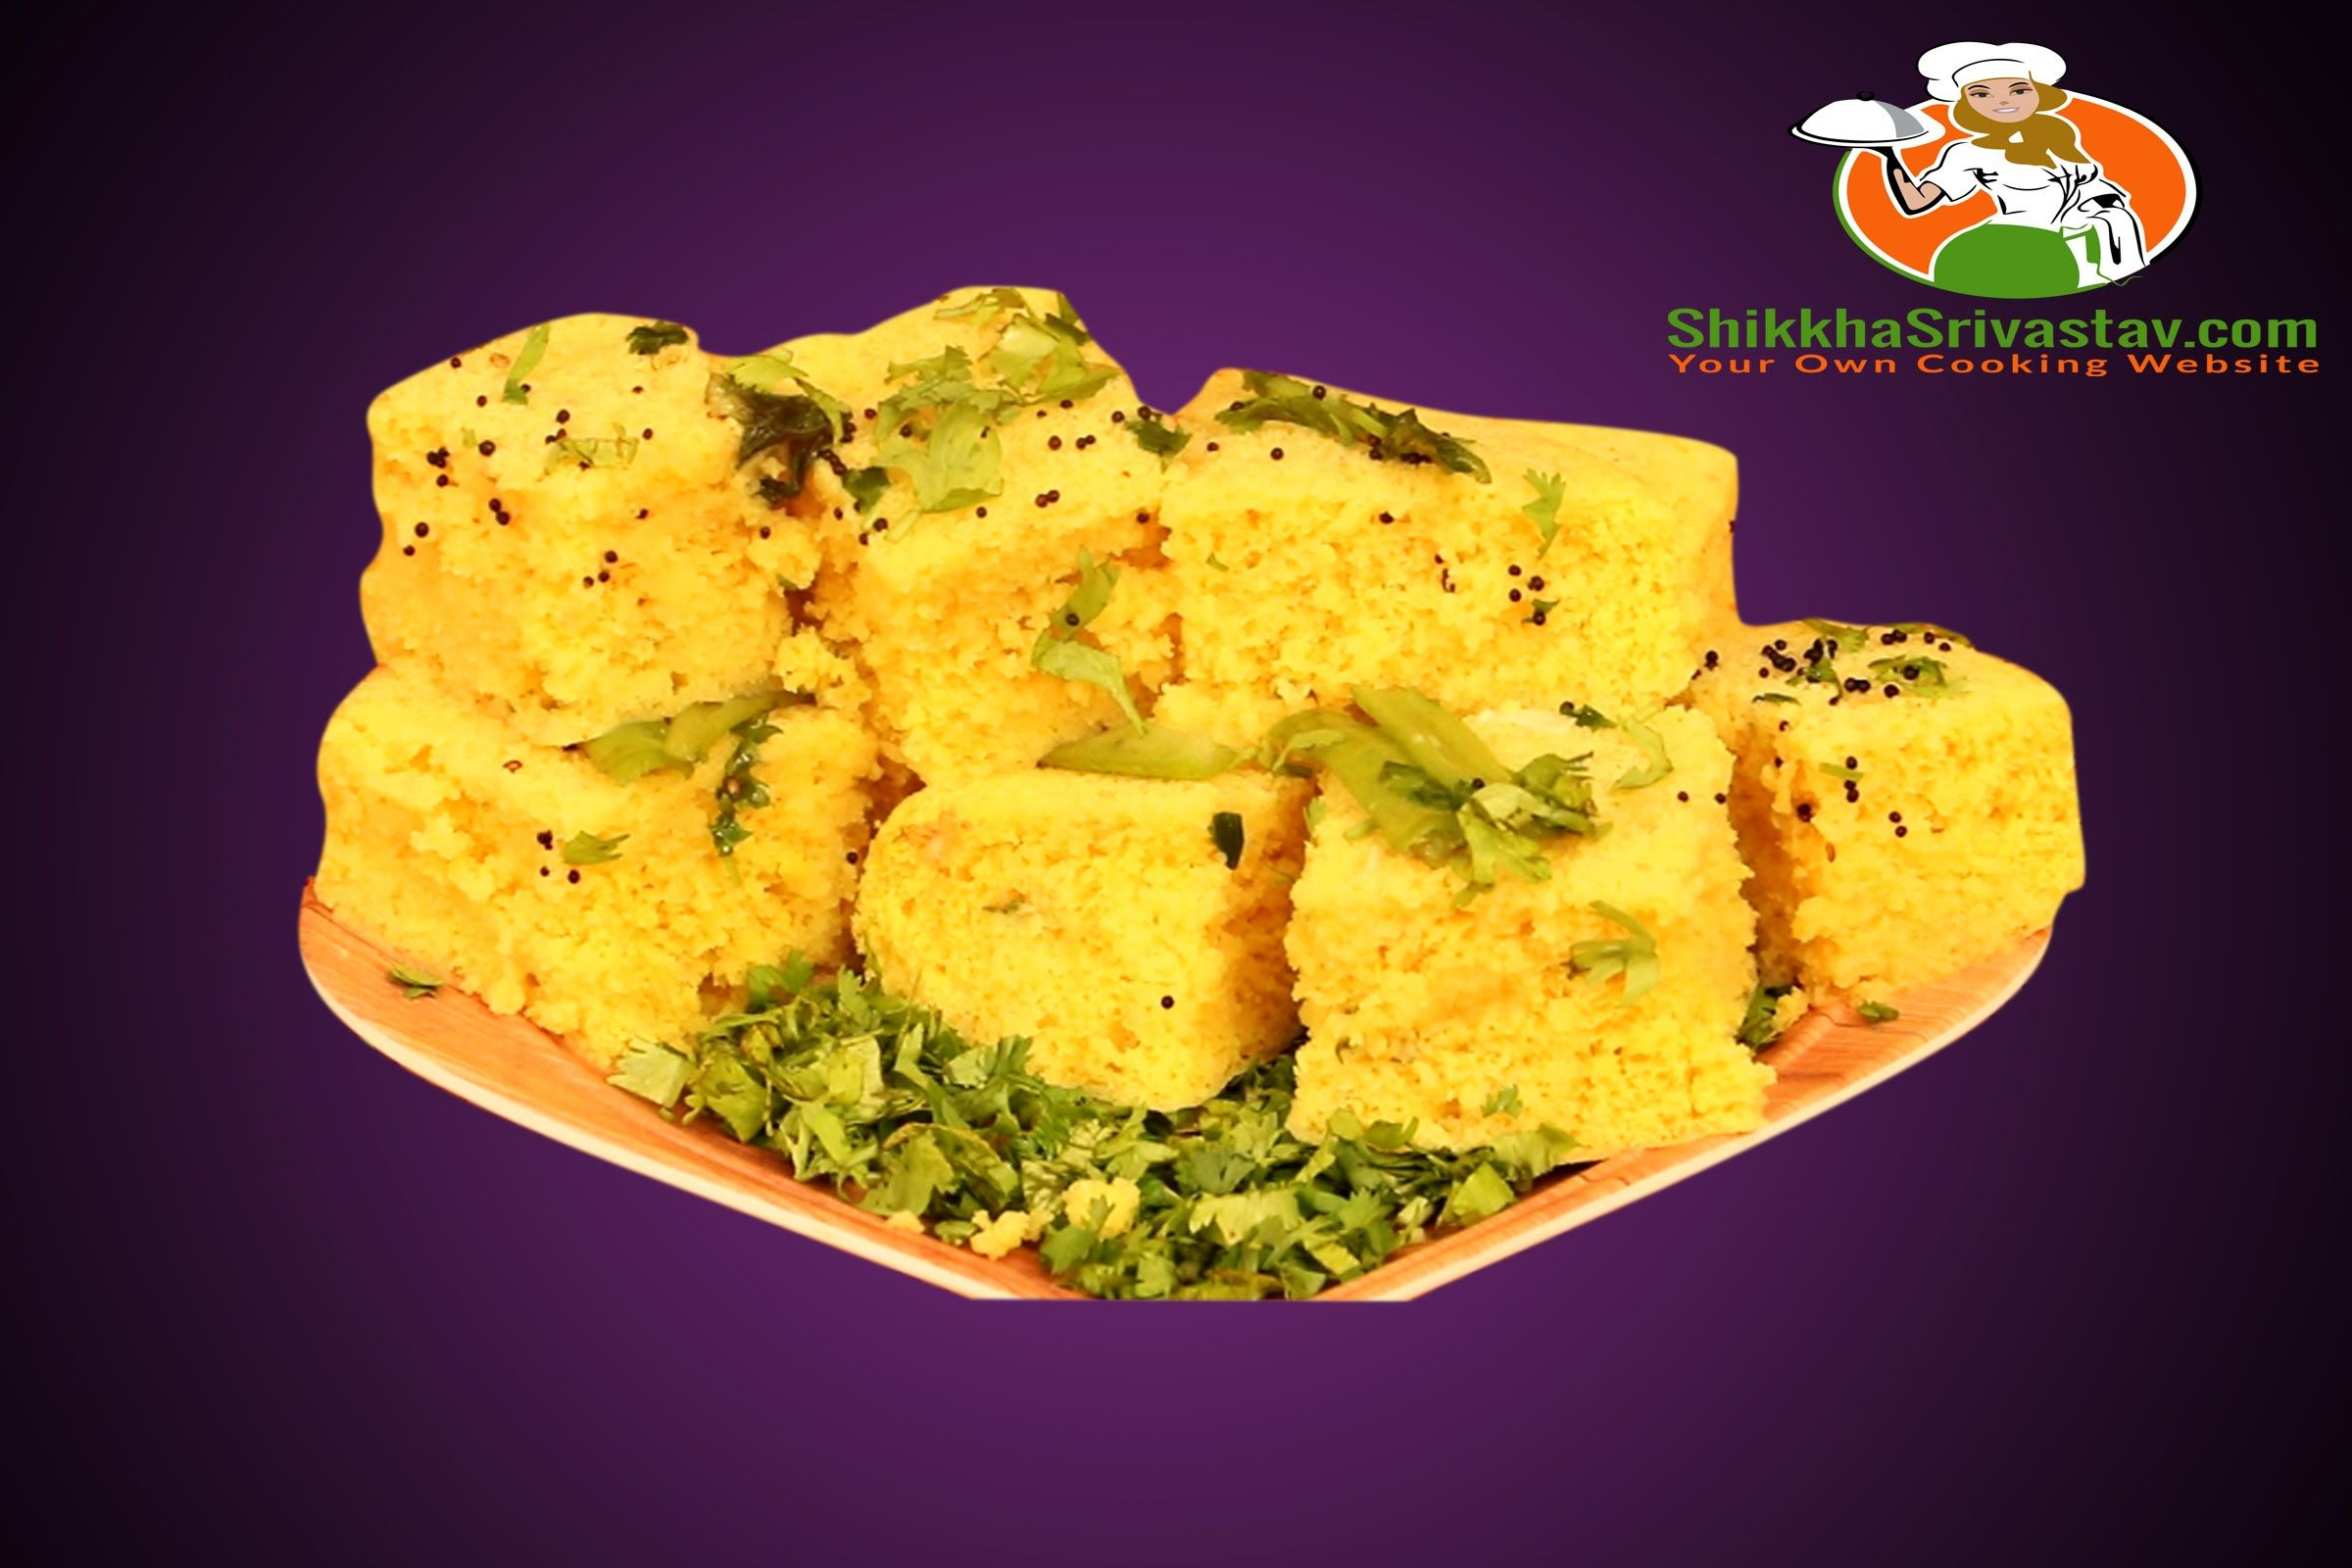 Besan ka khaman dhokla recipe in hindi hindi recipe youtube besan ka khaman dhokla recipe in hindi forumfinder Image collections